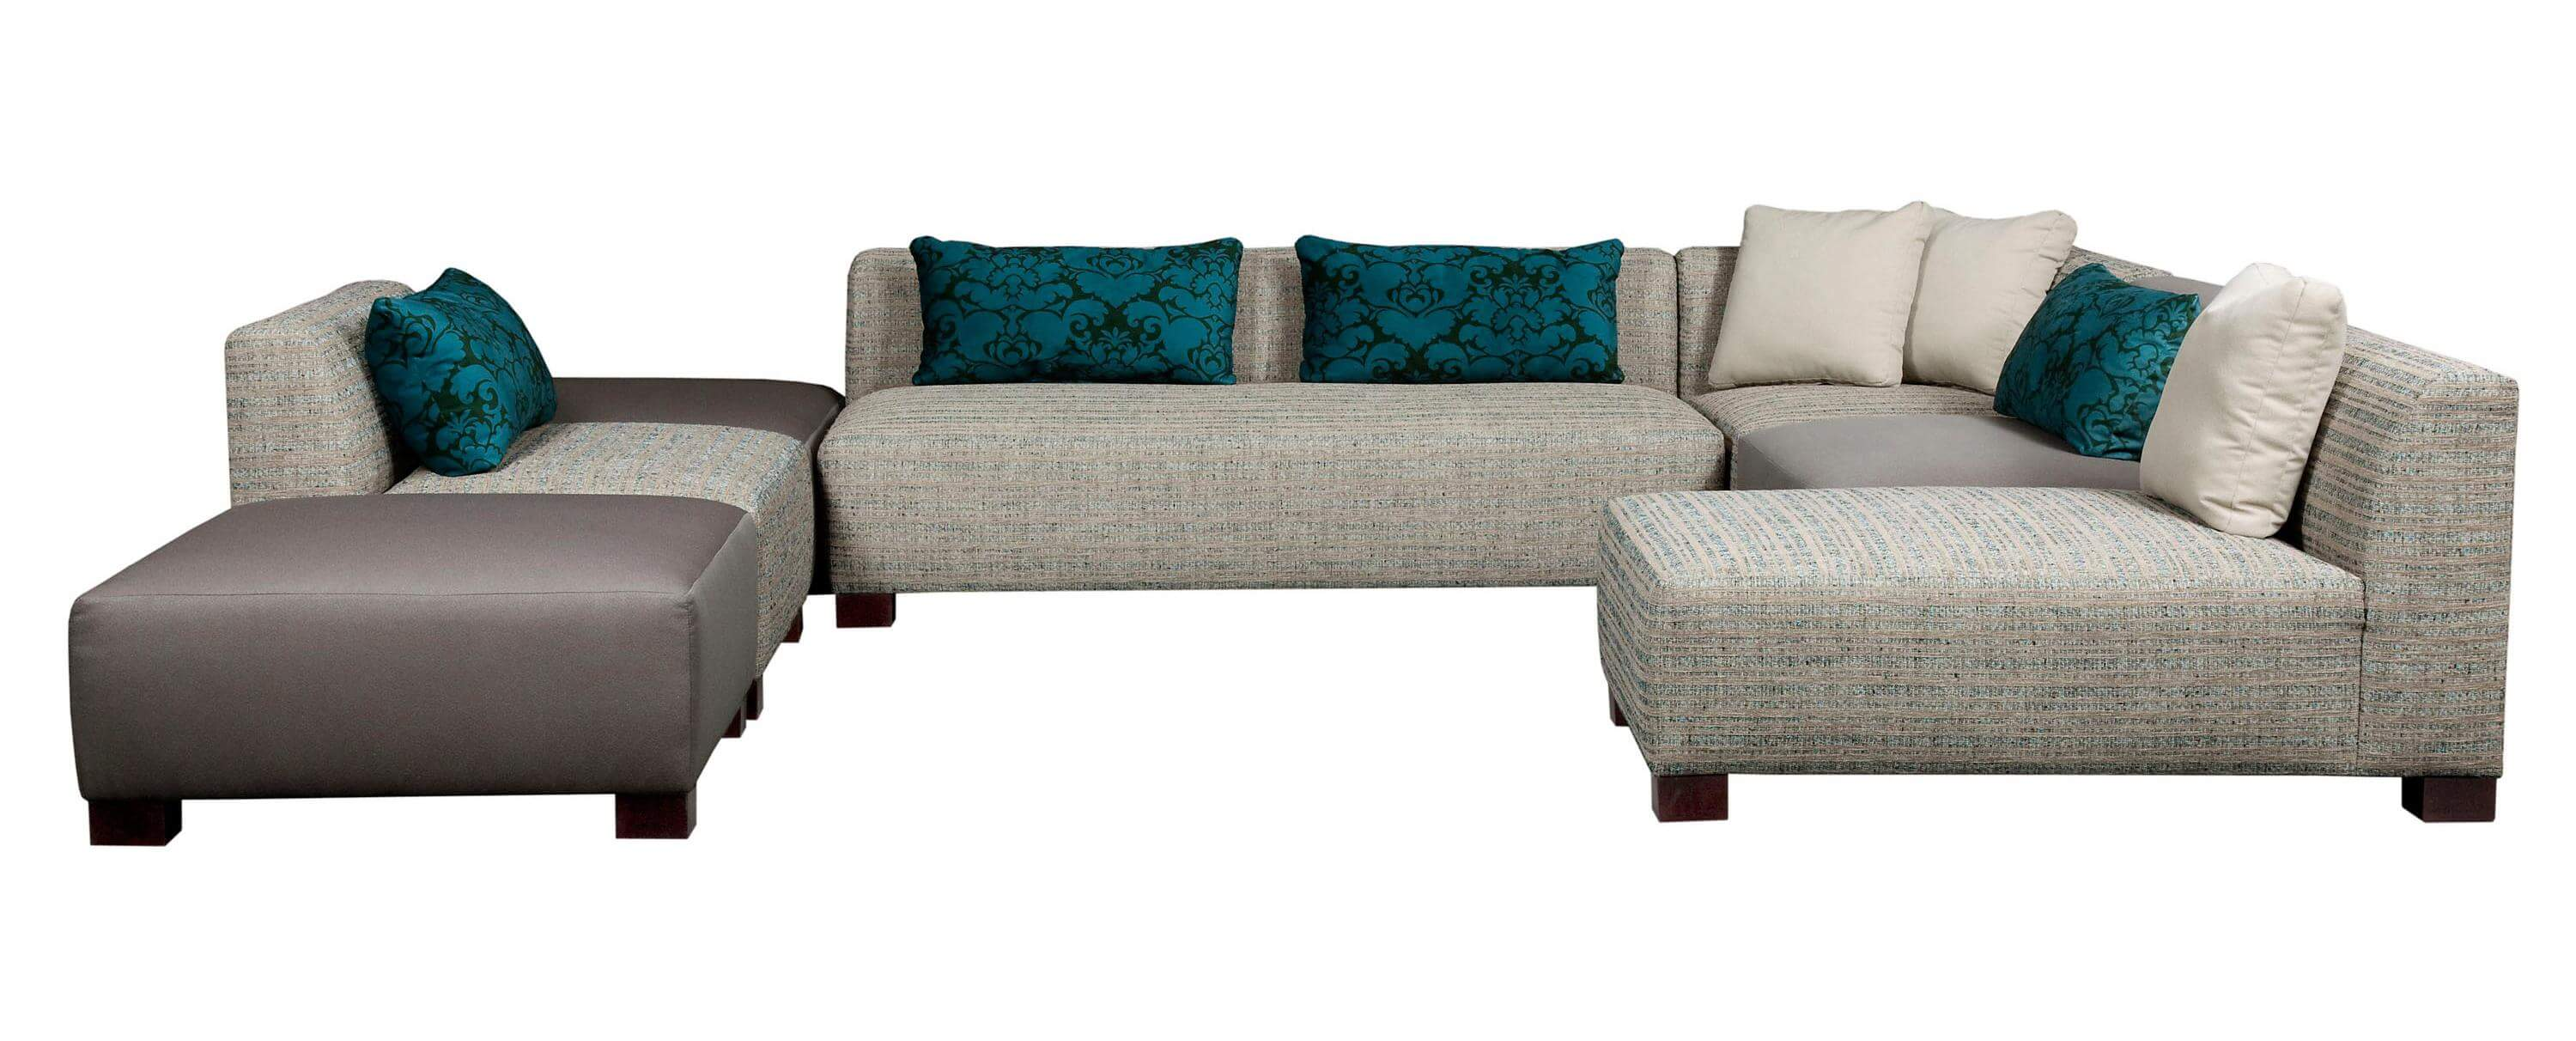 sofa exporters india jeromes sofas block in manufacturers